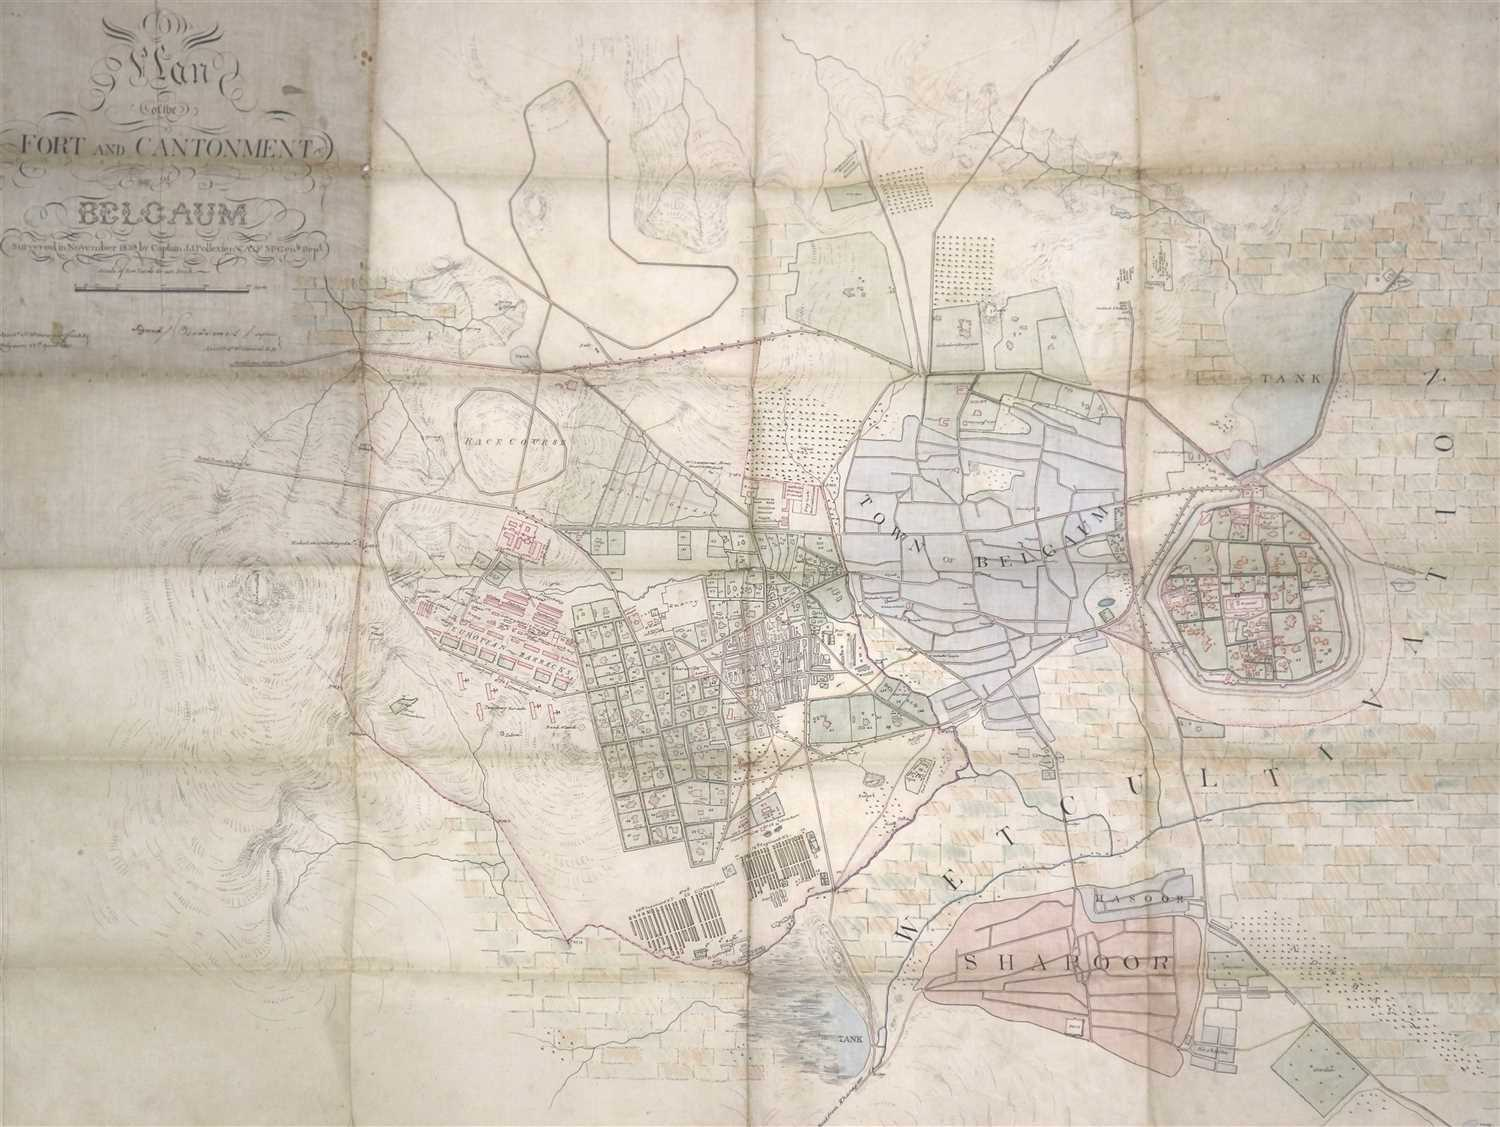 Lot 72-19th century British Indian military survey map